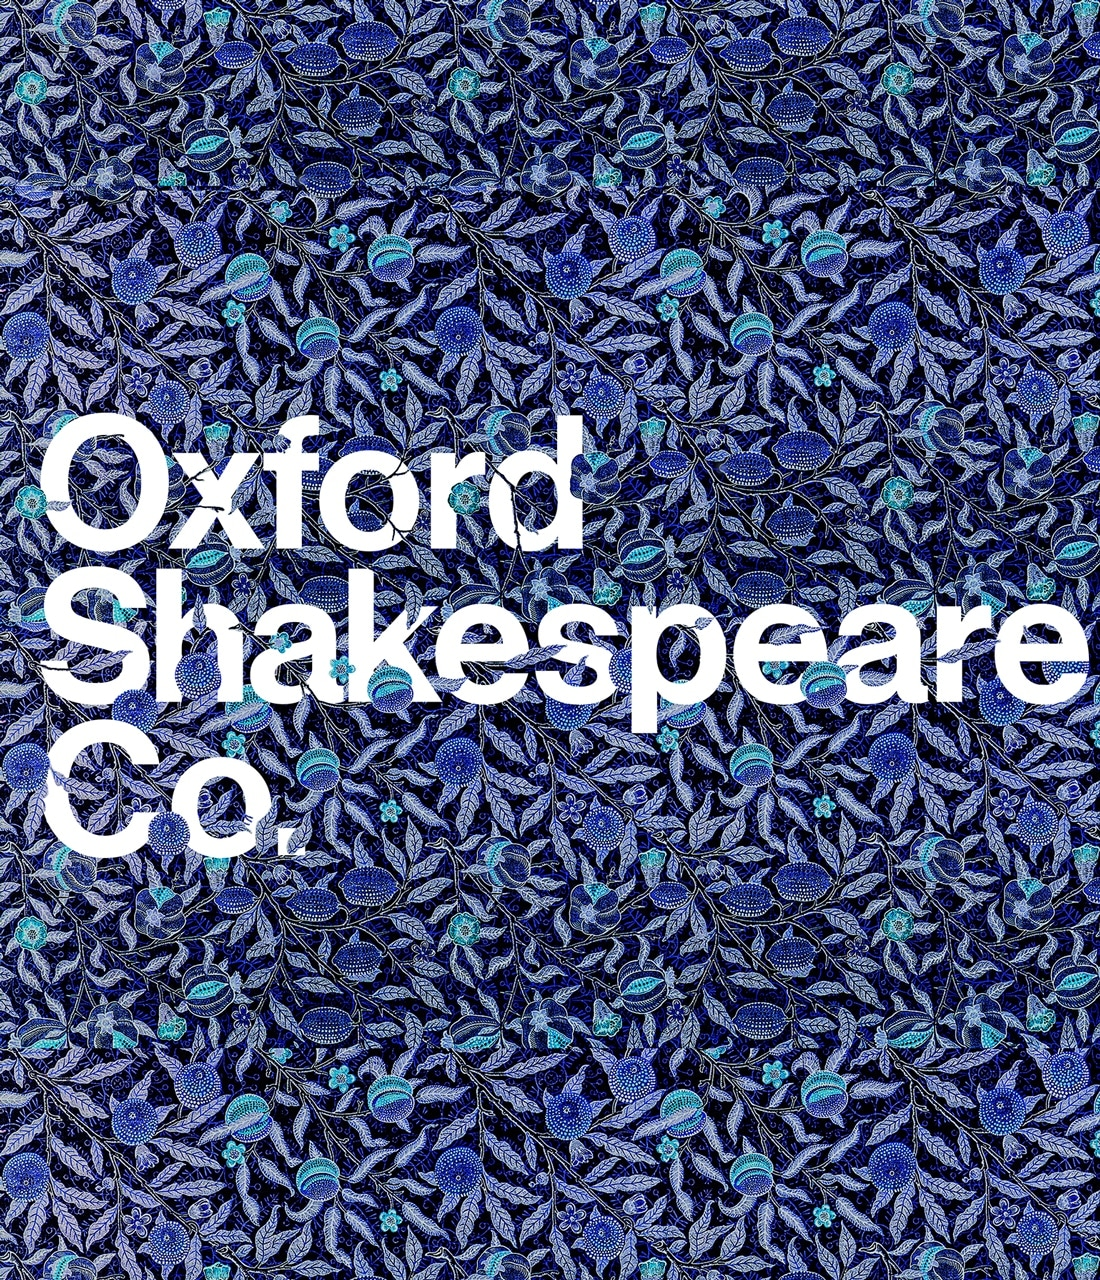 Oxford Shakespeare Company - creative direction, rebrand, advertising